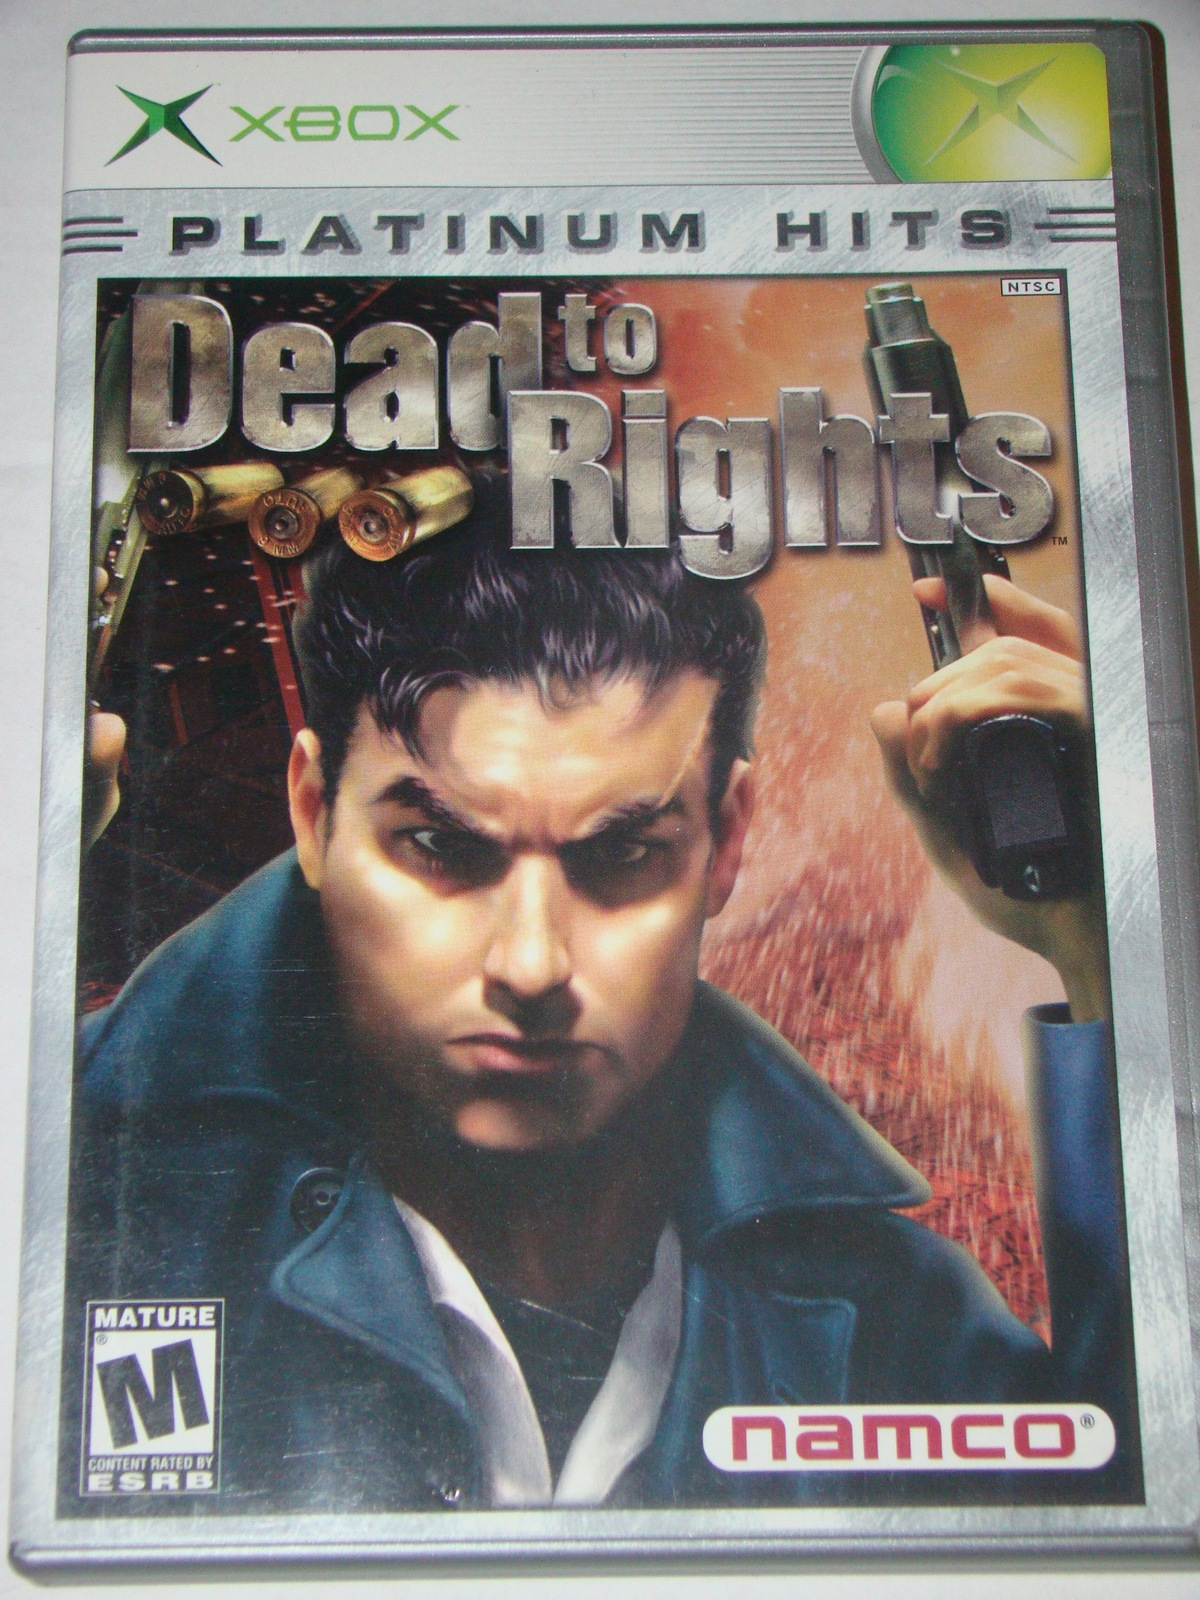 Primary image for XBOX - PLATINUM HITS - Dead to Rights (Complete with Instructions)